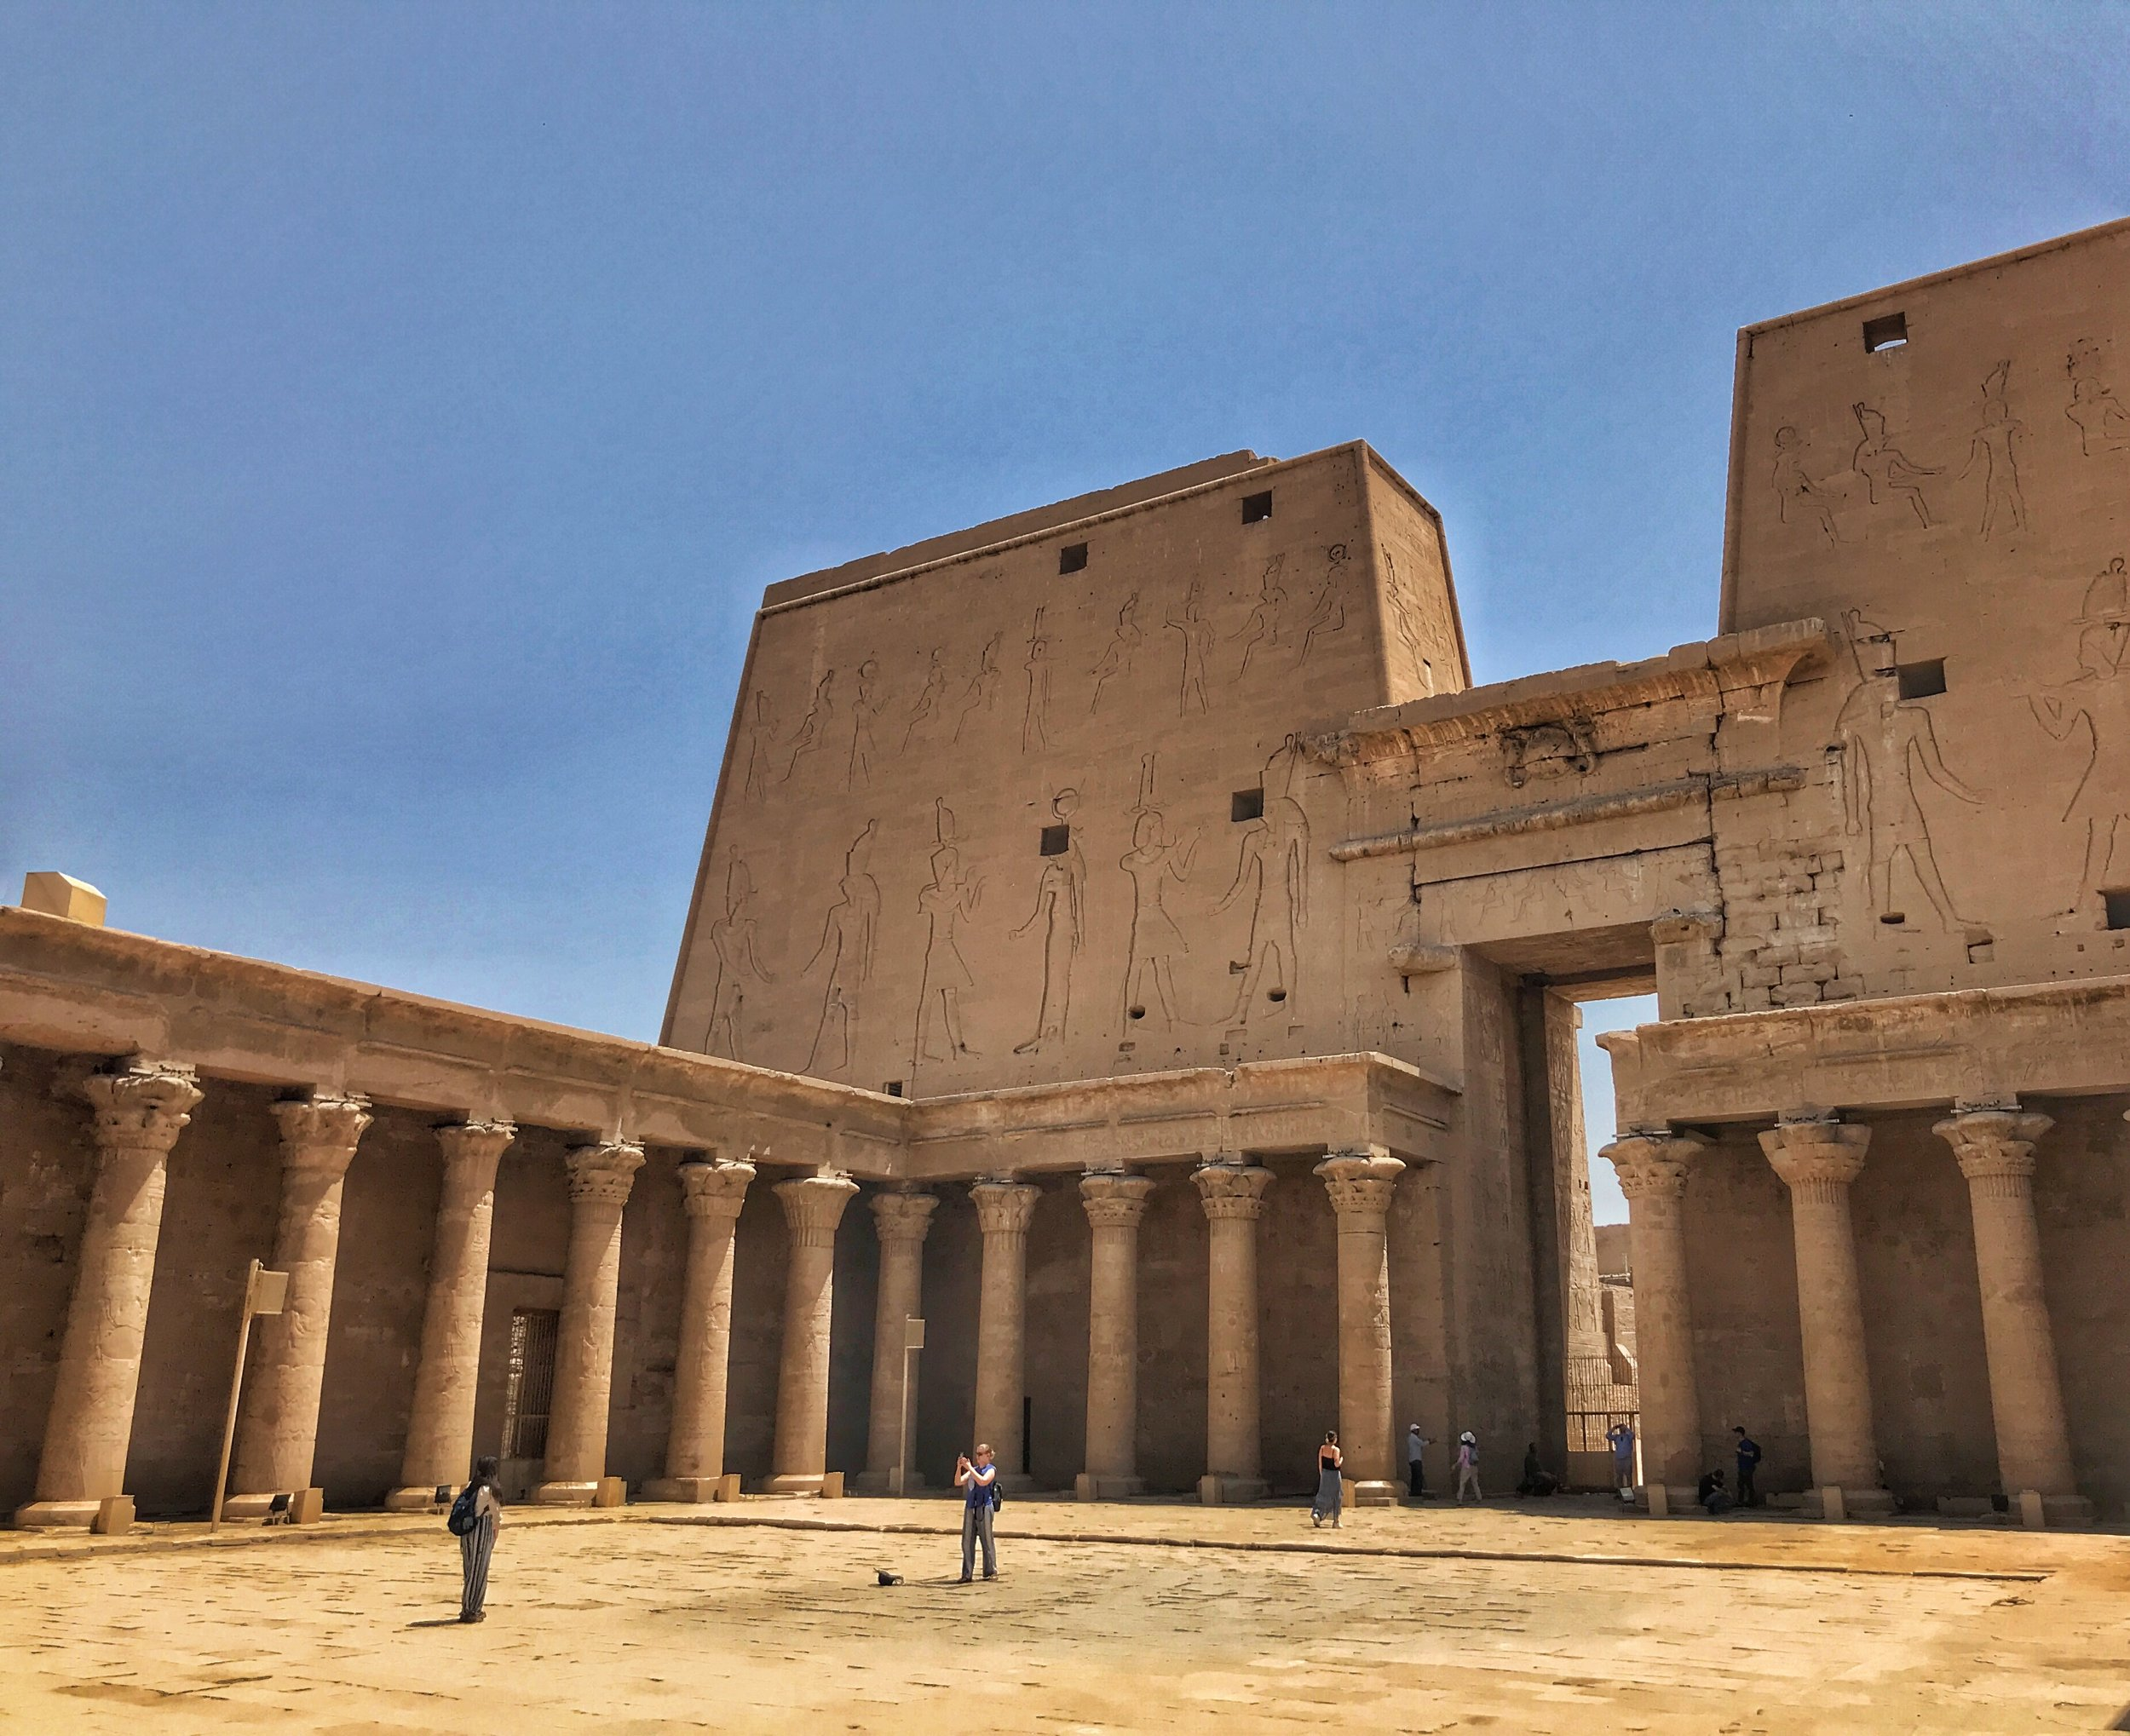 Step back in time to explore the temple at Edfu, more than 2,200 years old!